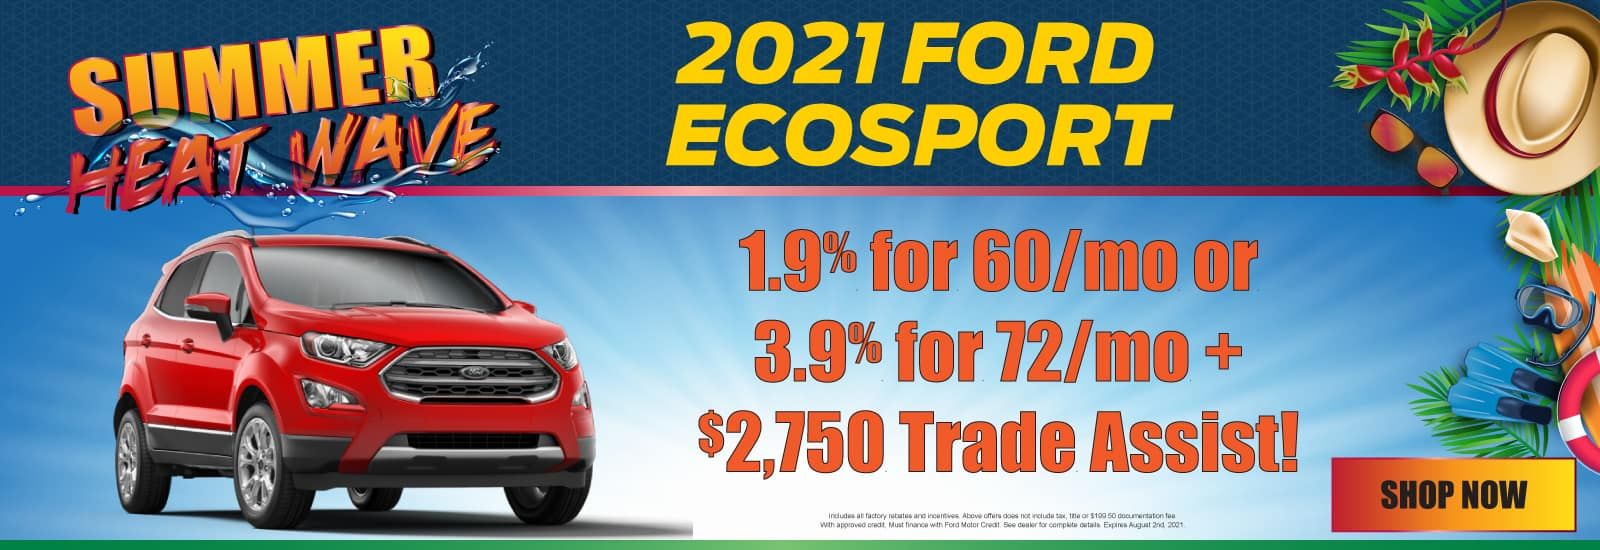 JULY2021-Ford-Ecosport-Web-Banner-1600×550